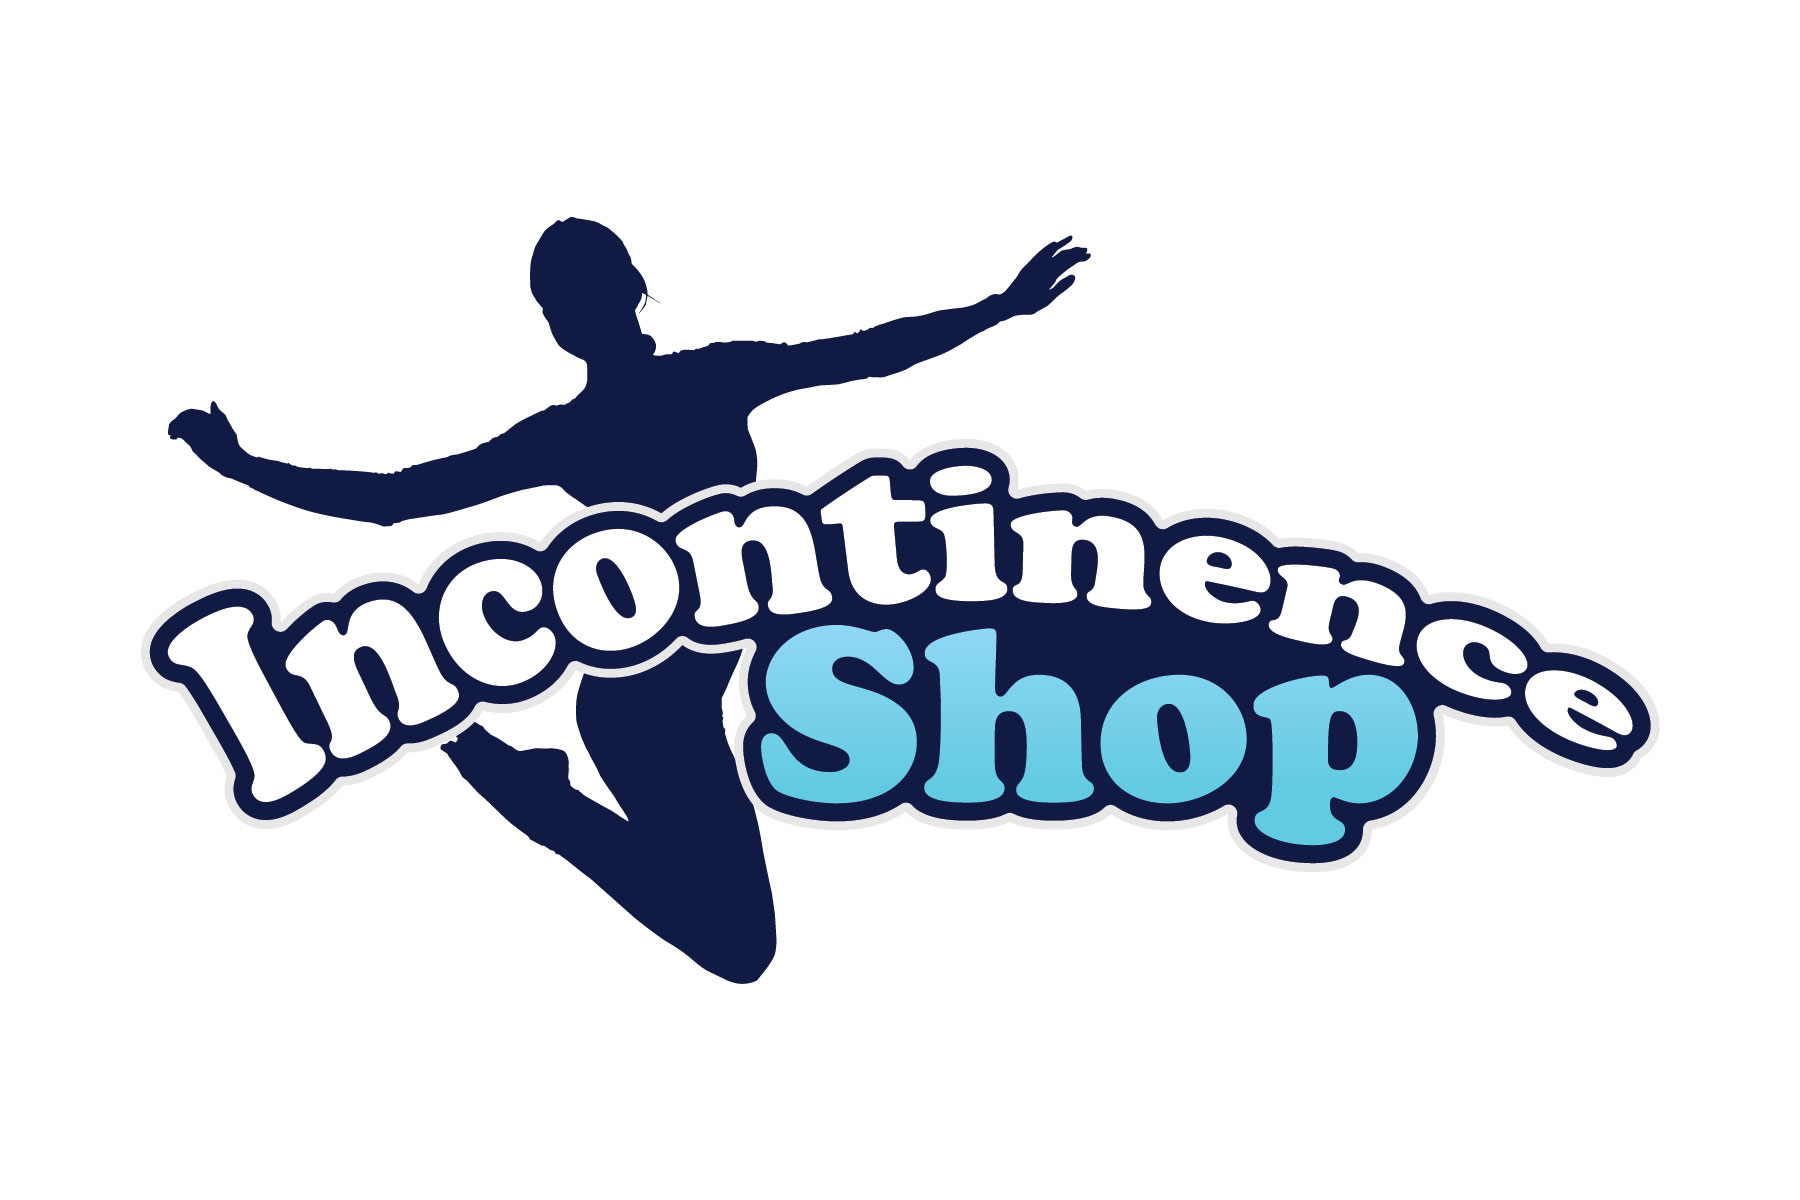 Incontinence Shop Ltd